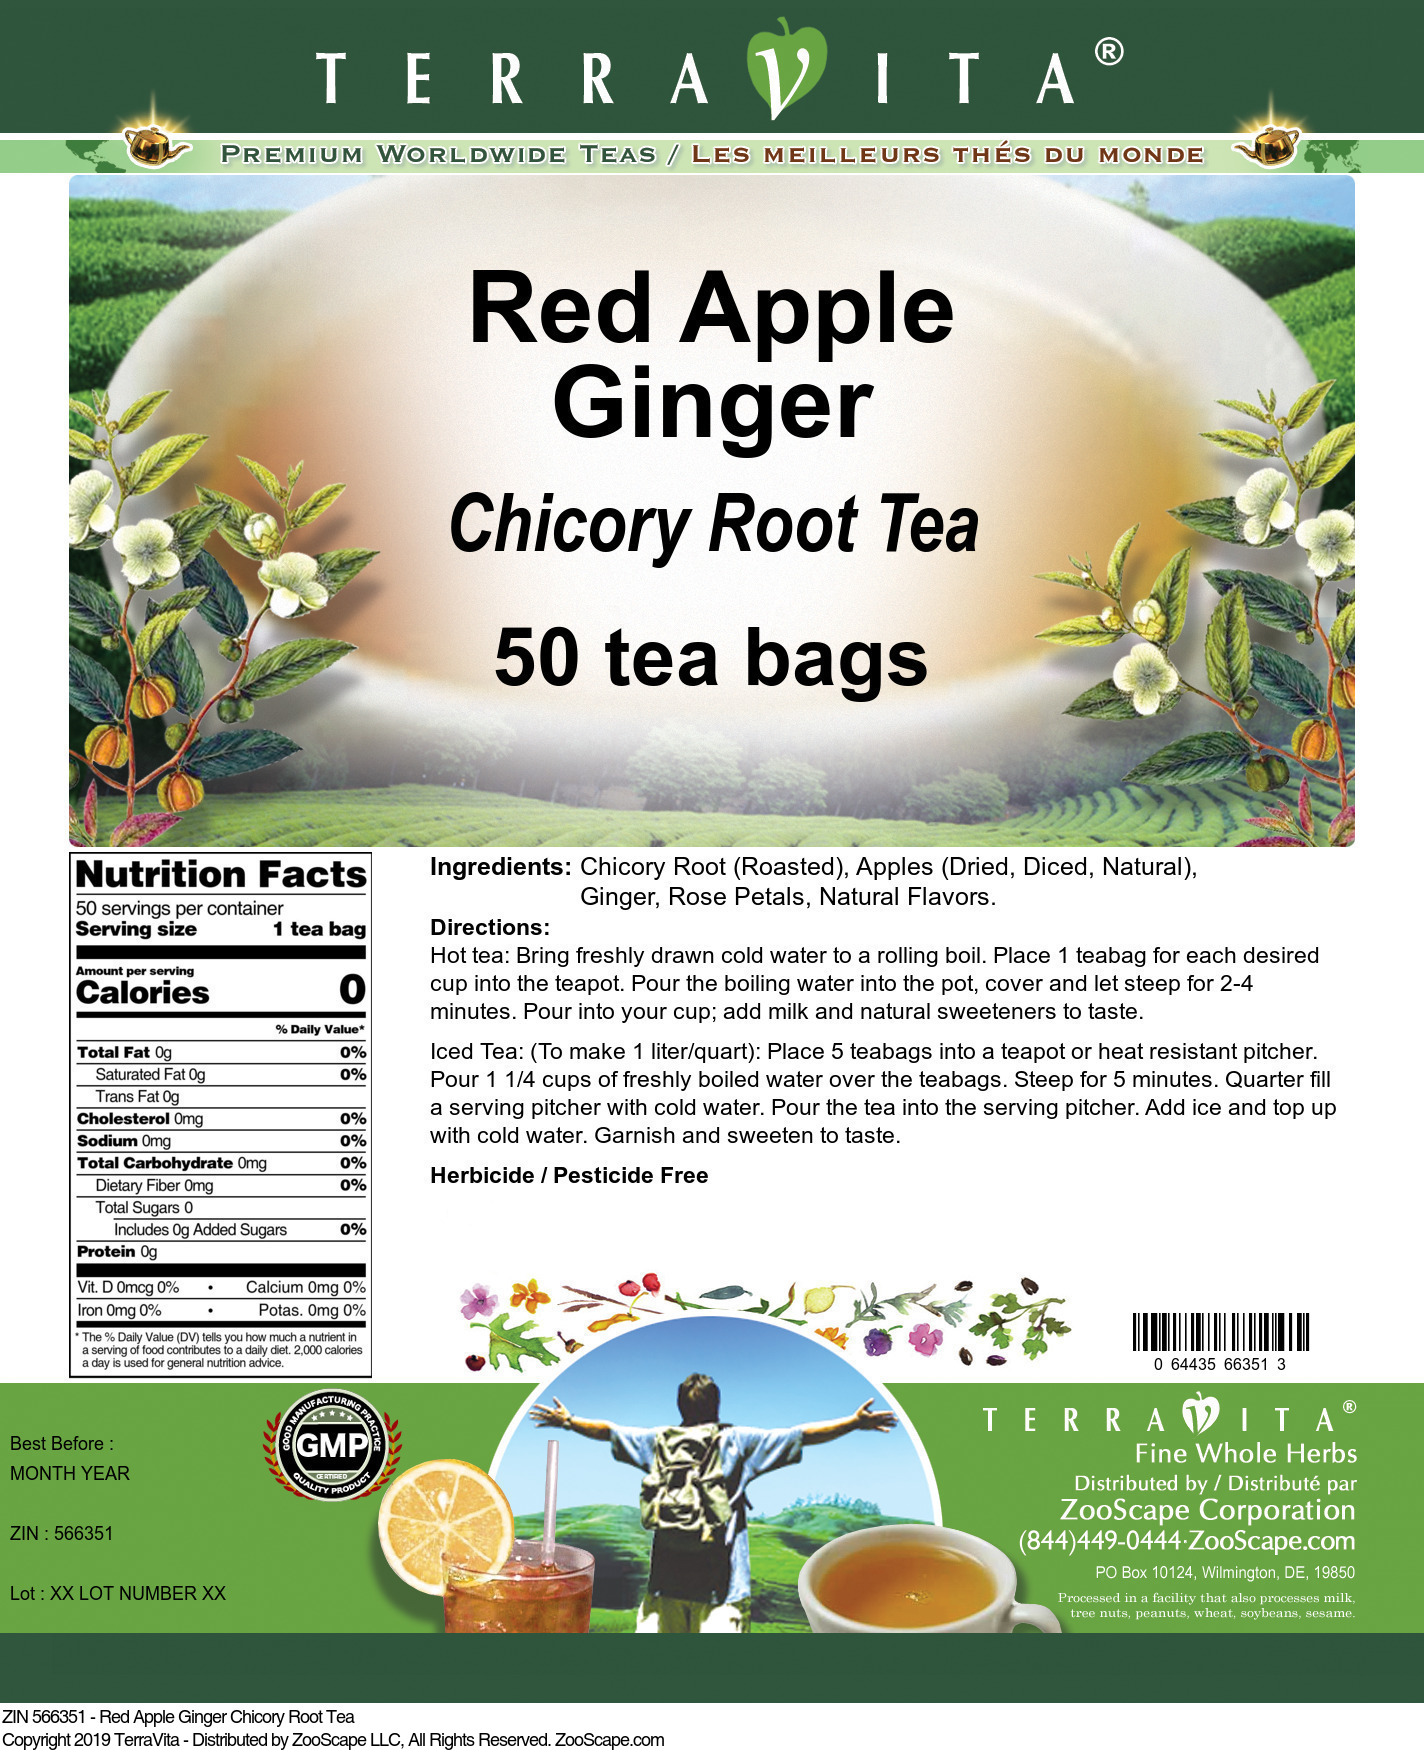 Red Apple Ginger Chicory Root